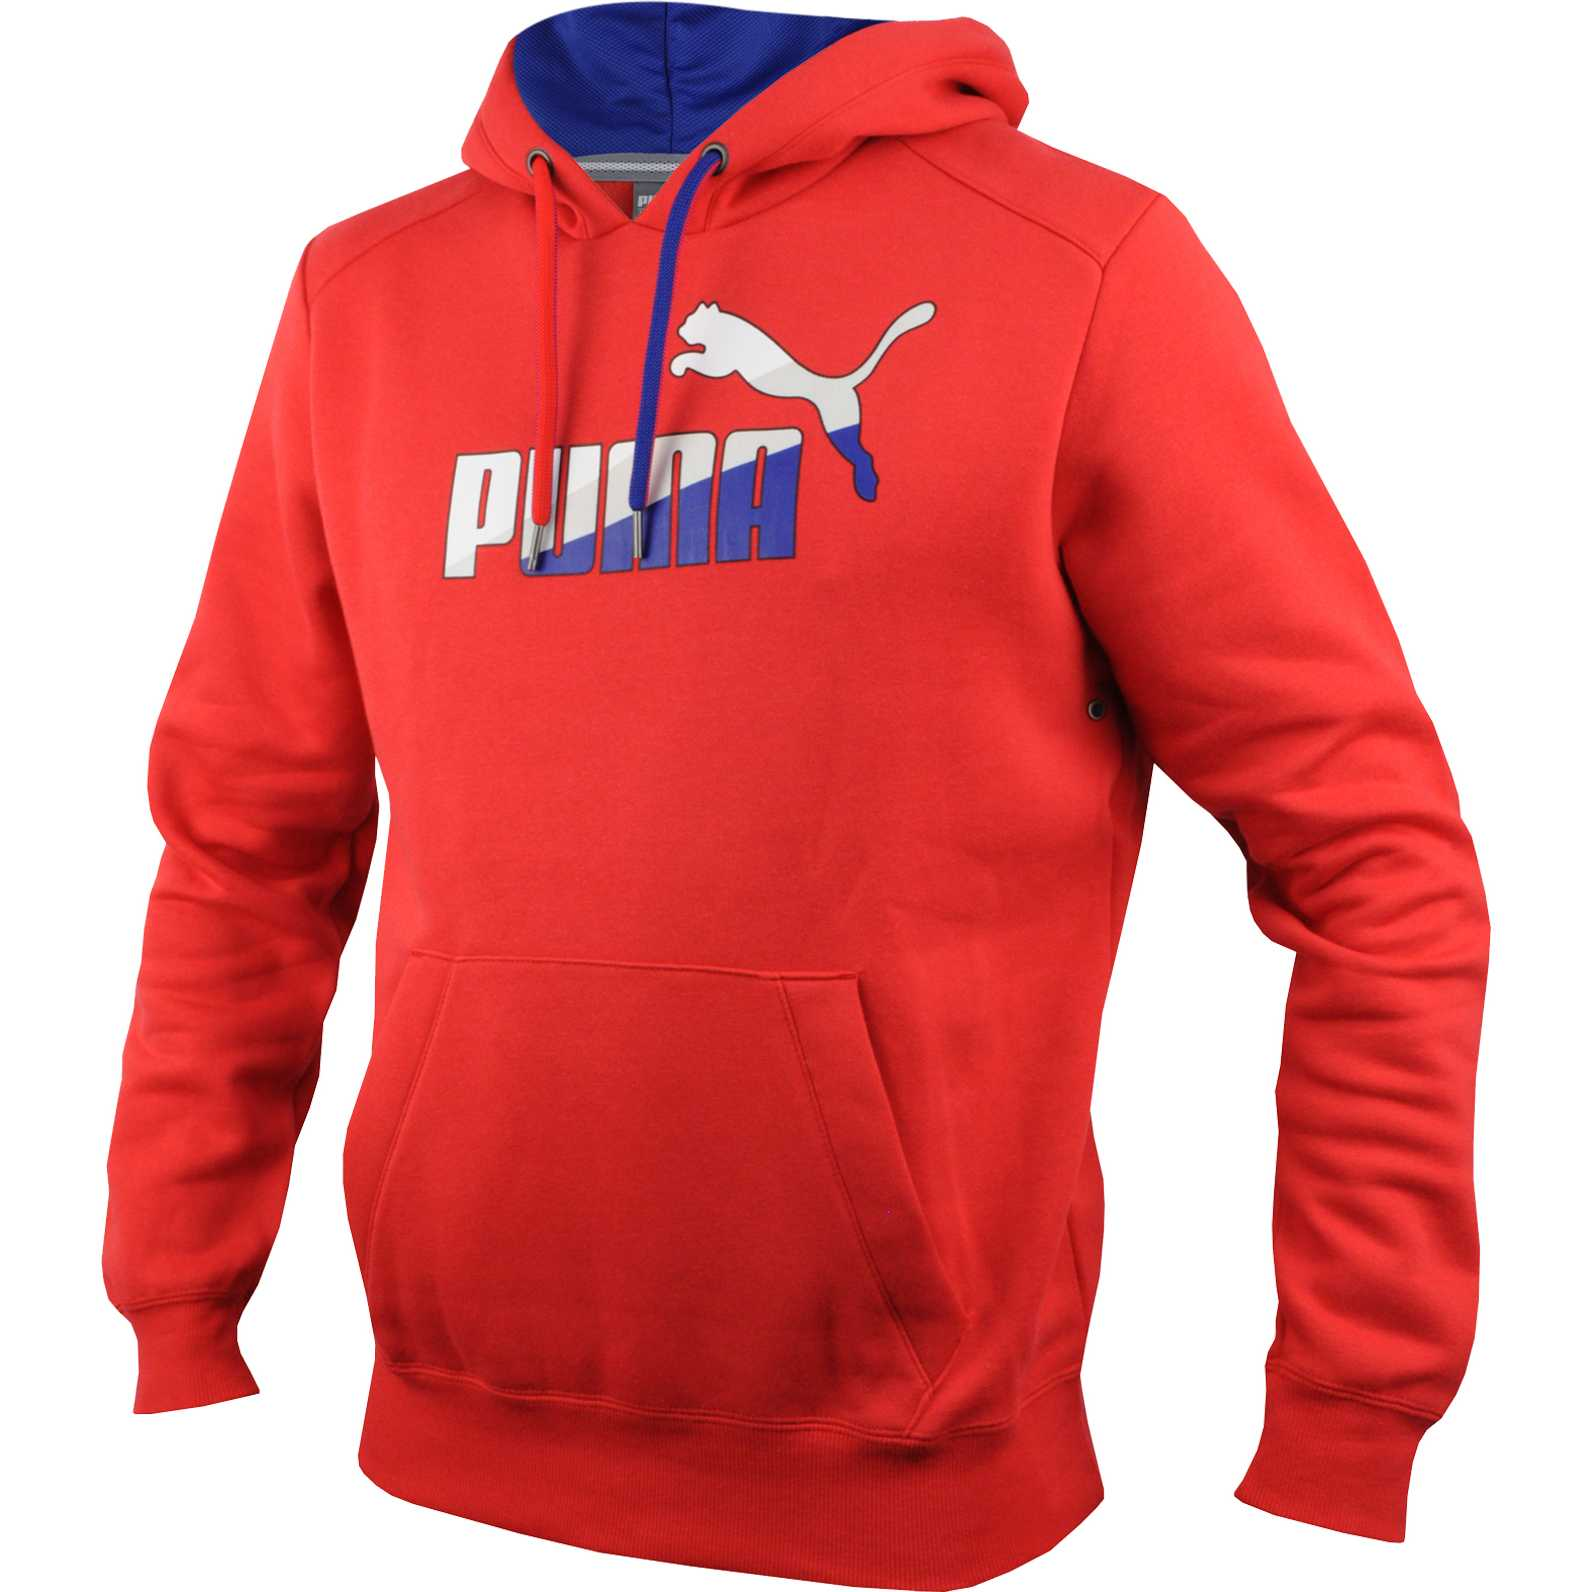 Hanorac barbati Puma Fun Graphic Hooded Sweat FL 83411105